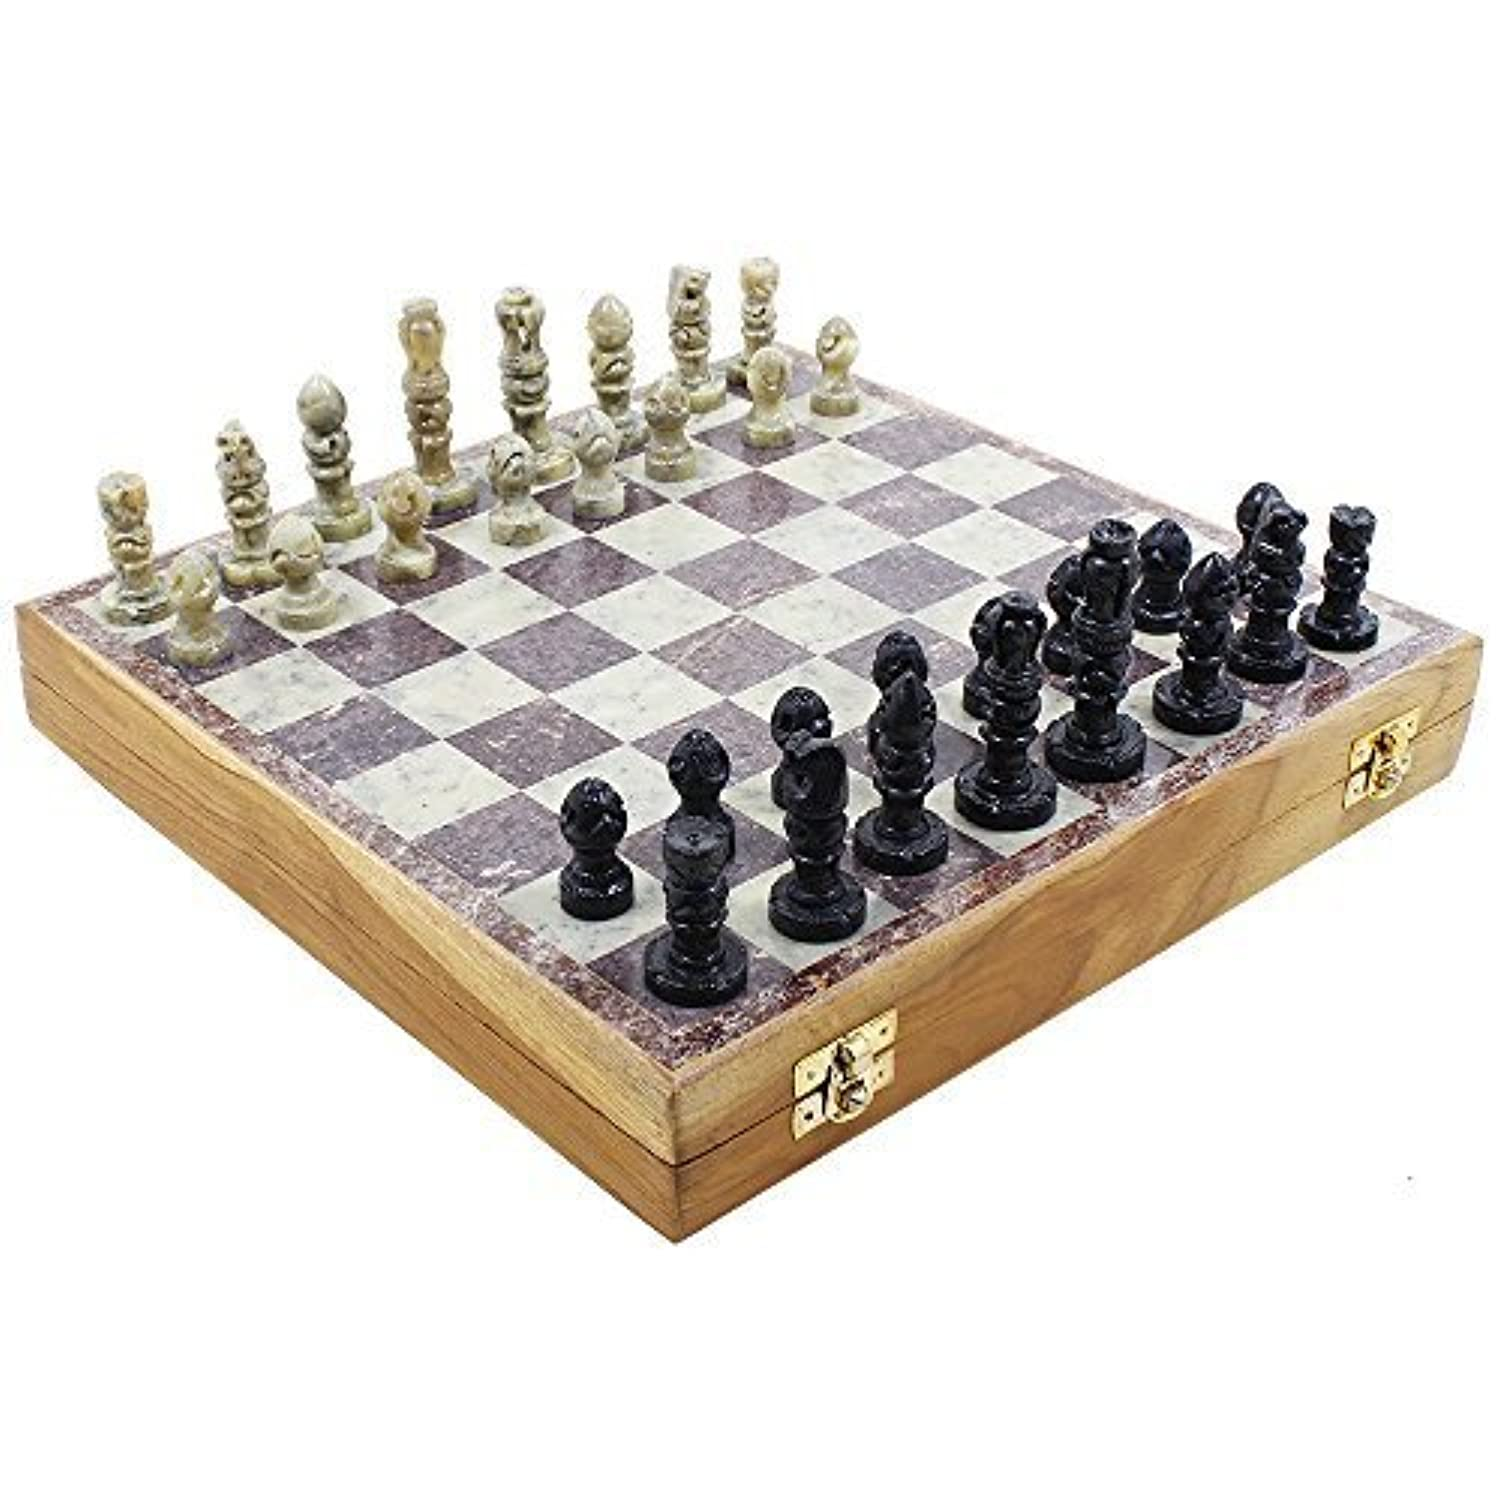 Soapstone Staunton Chess Set 10 Board with Wooden Storage for Pieces by Store Indya [並行輸入品]